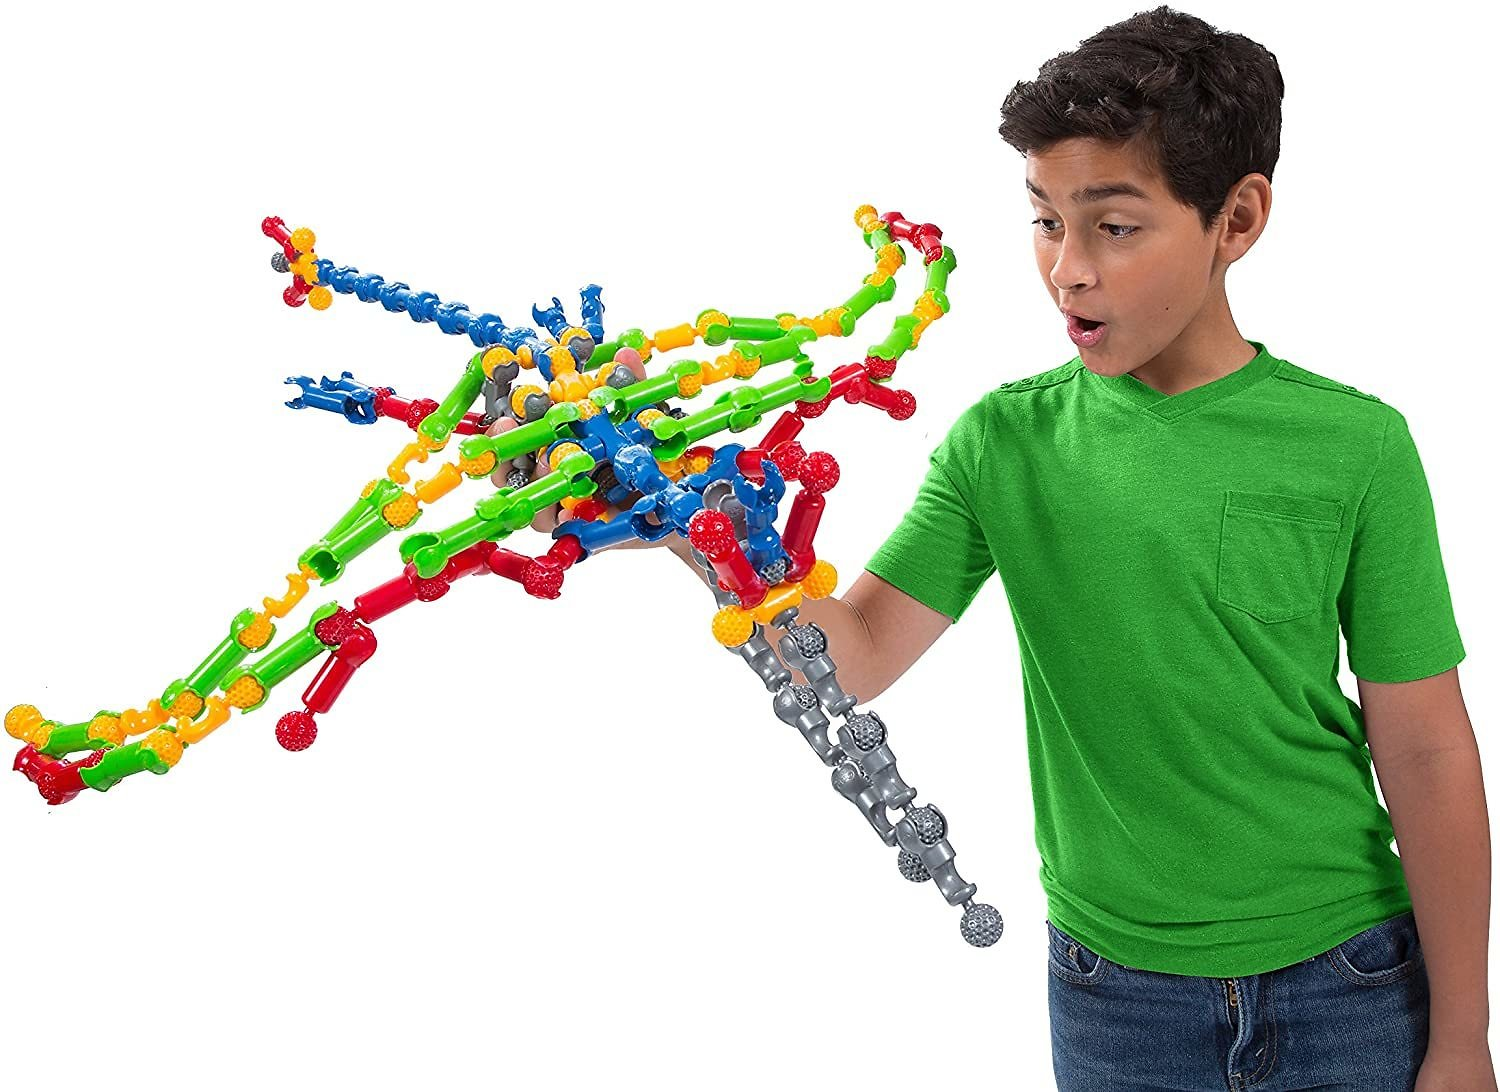 ZOOB 125 Moving Mind-Building Modeling System, Assorted Colors, 125-Pieces